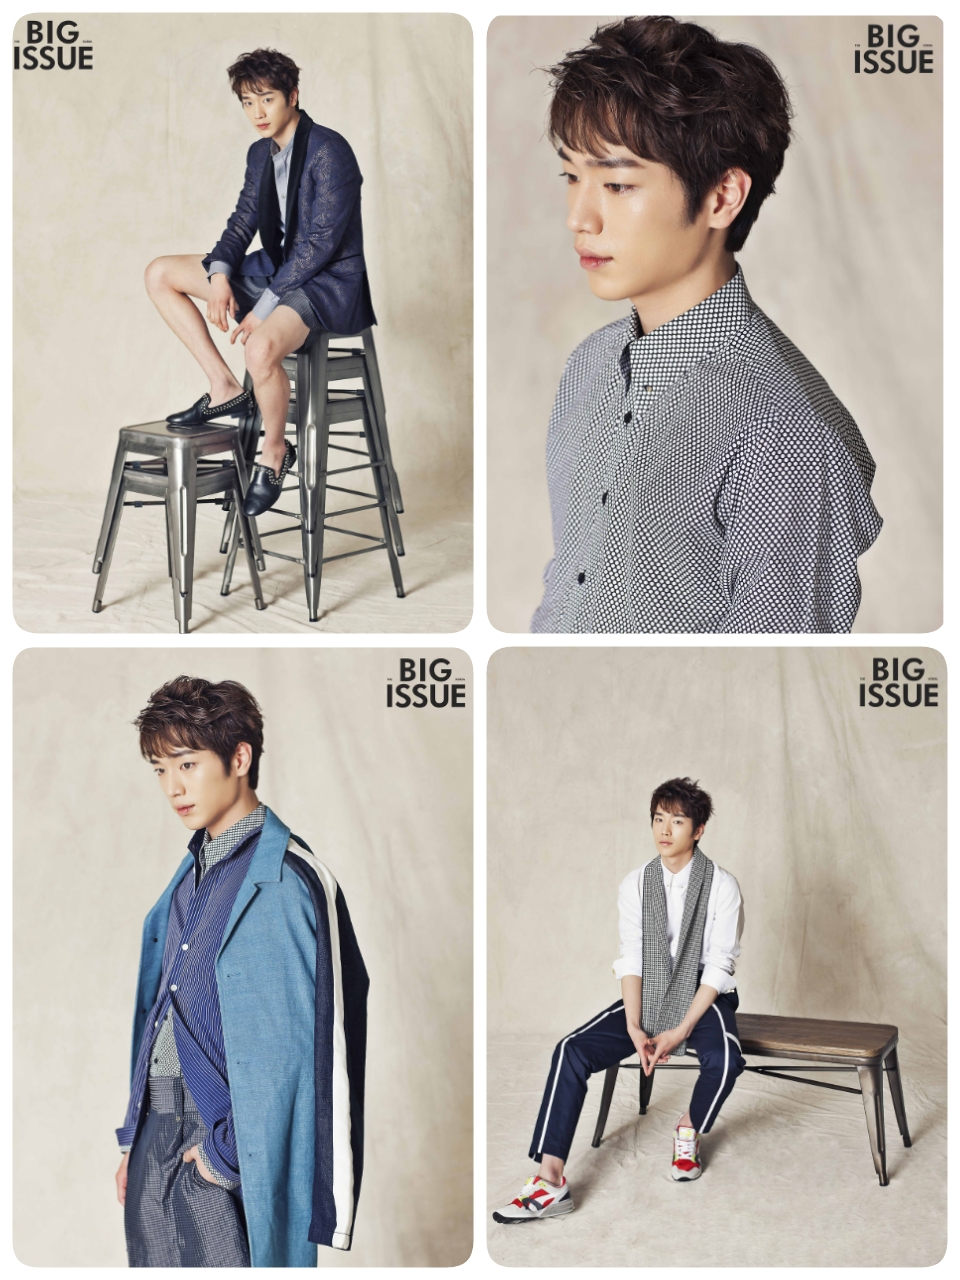 Seo Kang Joon - The Big Issue Magazine June Issue 1